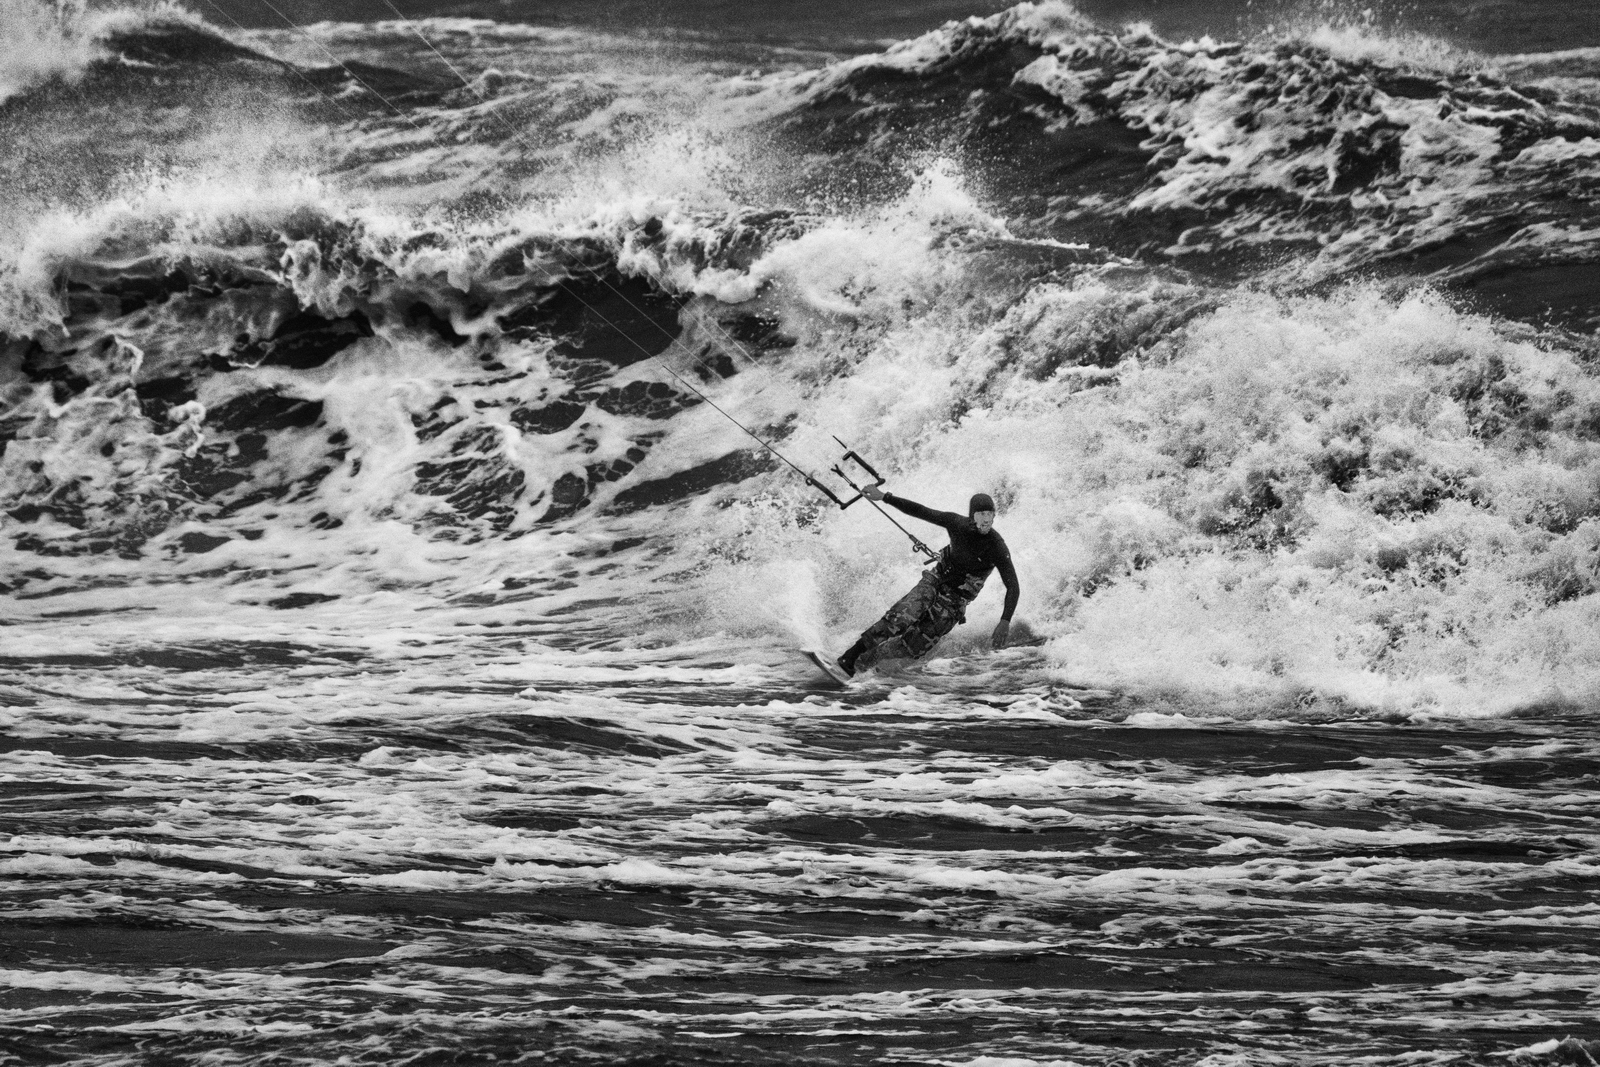 Baltic Kite Wave Jam 2016 - Once a year in Poland are organized championships Baltic Wave Kite Jam, riding on a wave on the perfect forecast! :) On the picture Janek Korycki, winner of this year's edition fought on in Ustka. Fuji XPro-2, XF 100-400, 1/500s, f8, ISO 3200